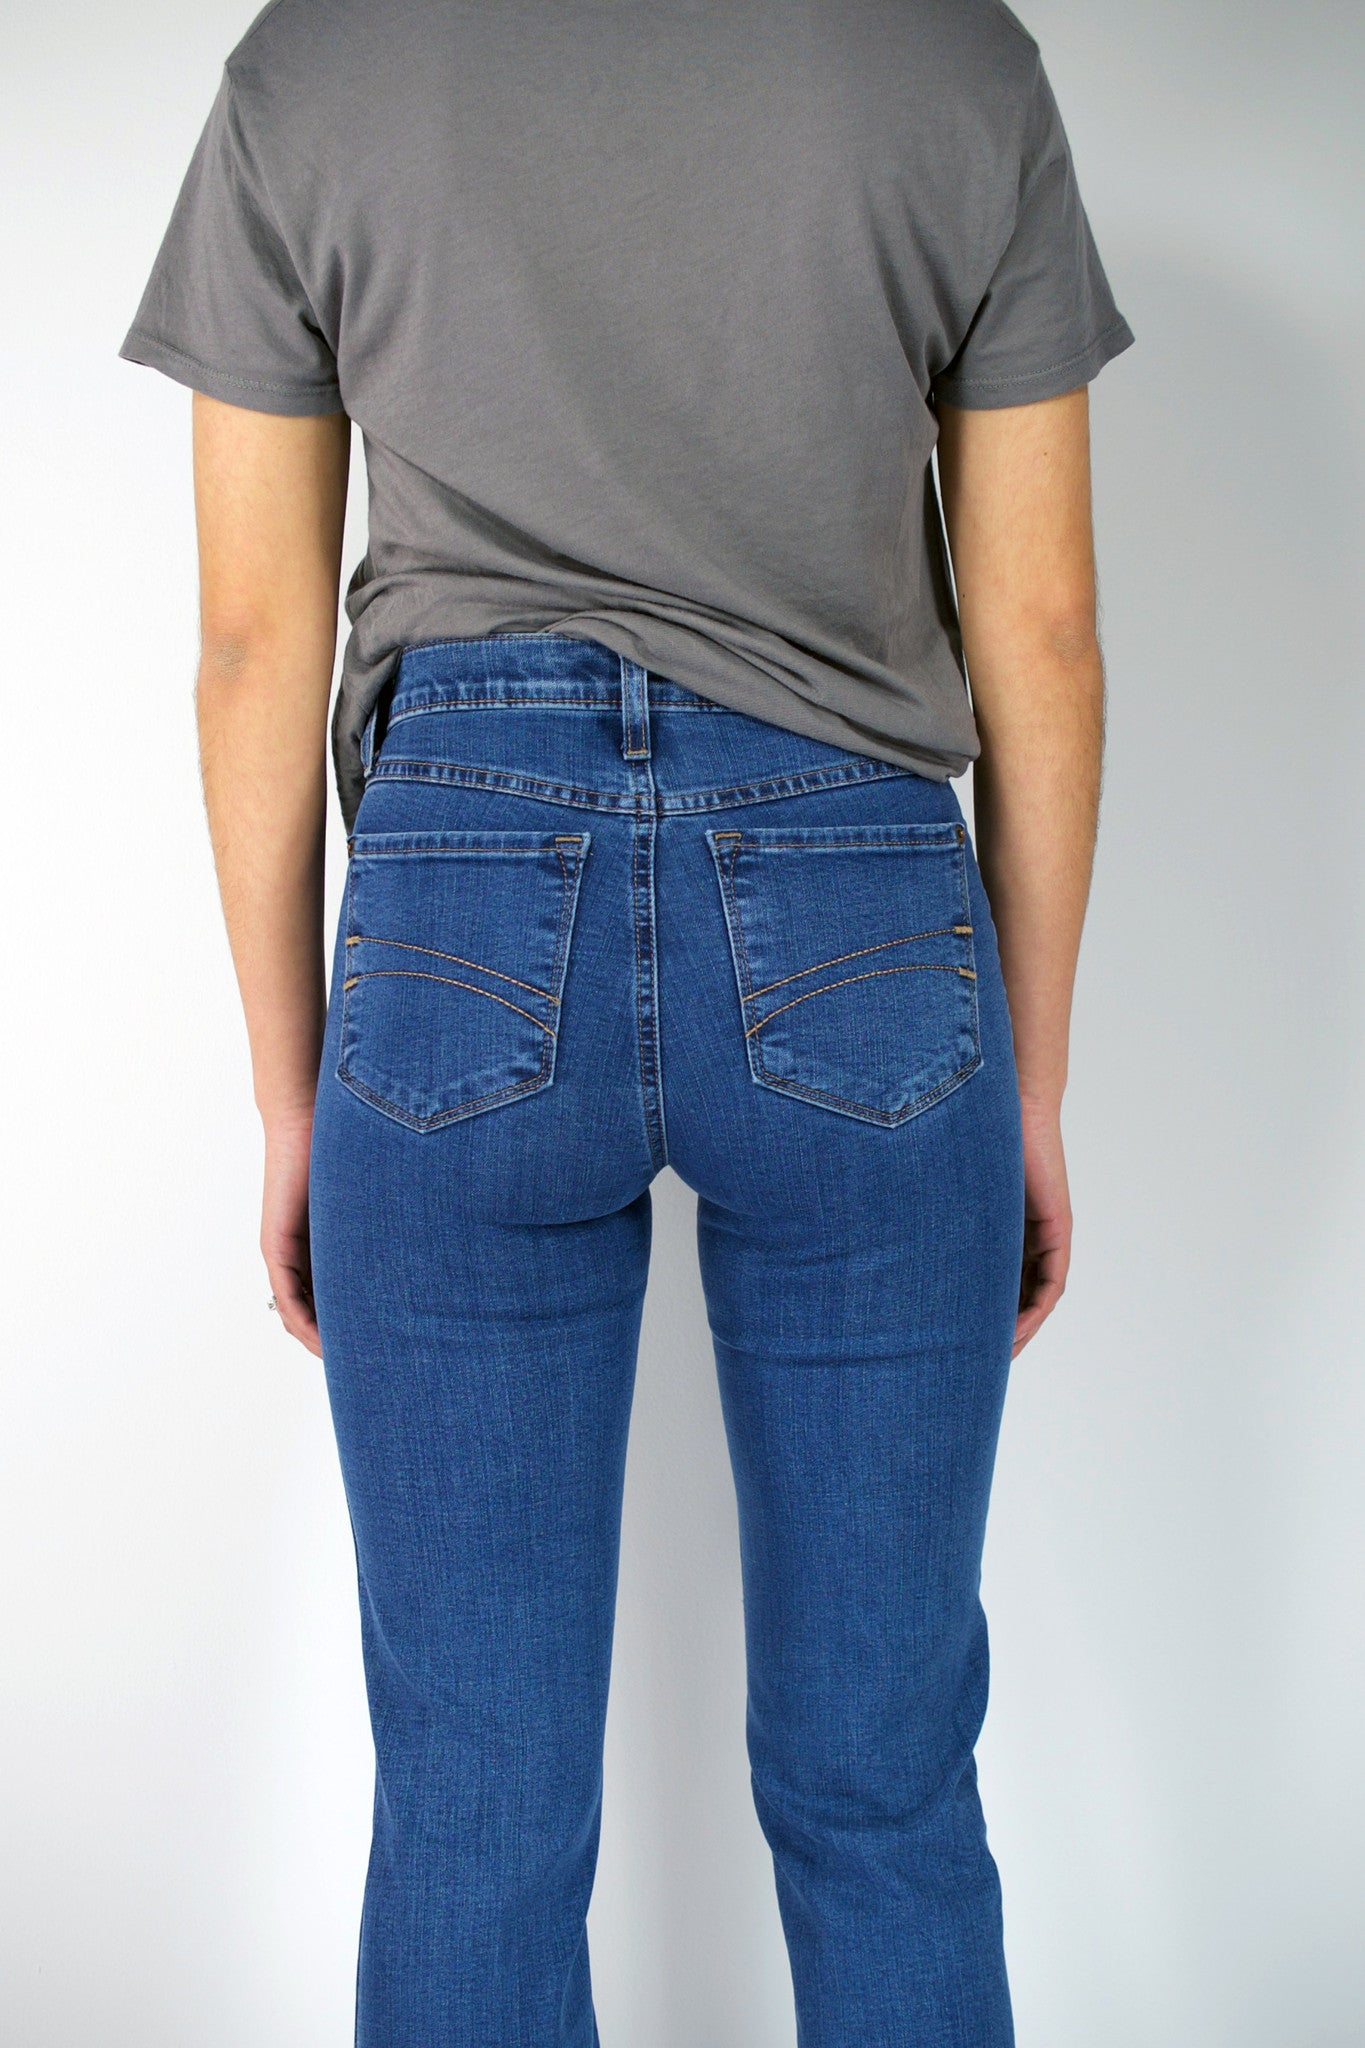 Second yoga jeans high rise boot cut